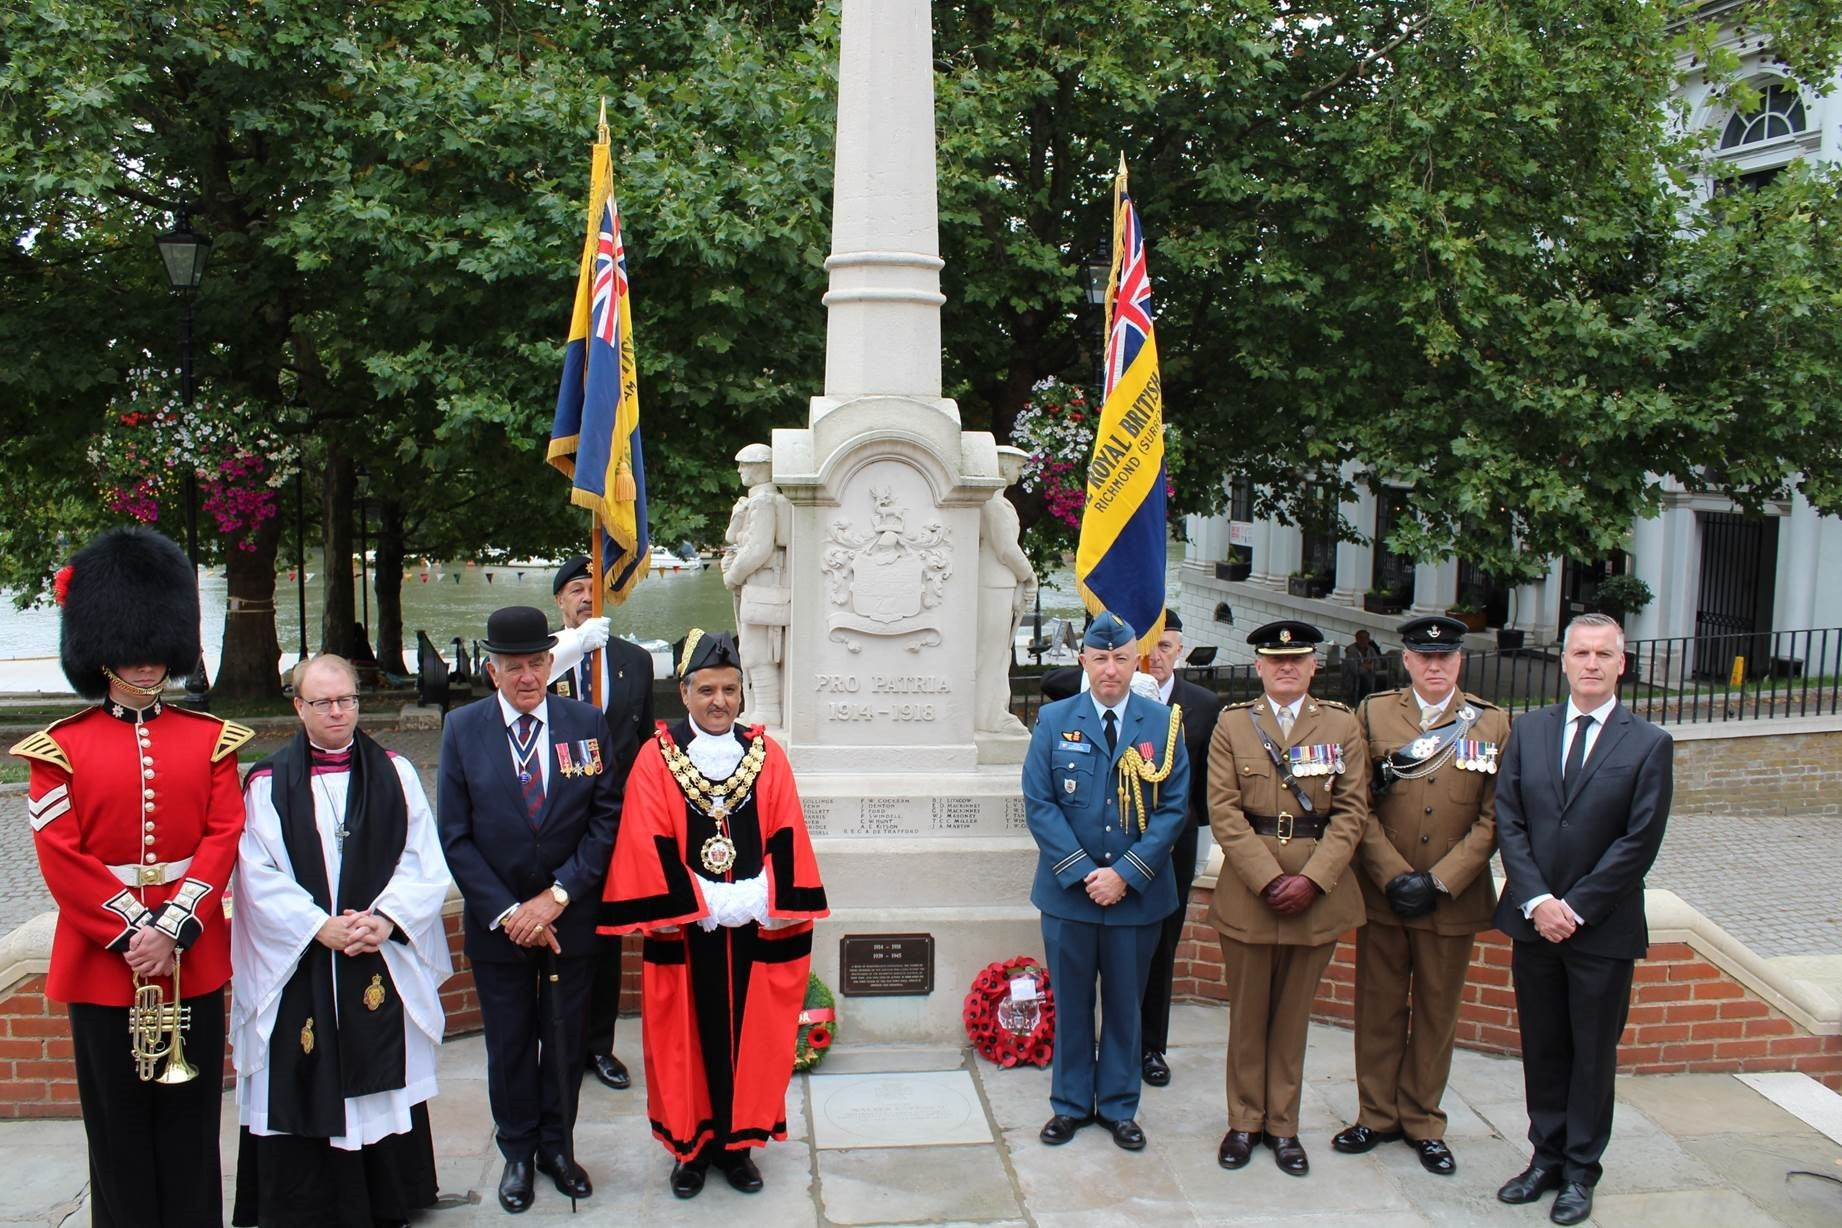 Commemoration at the Richmond war memorial